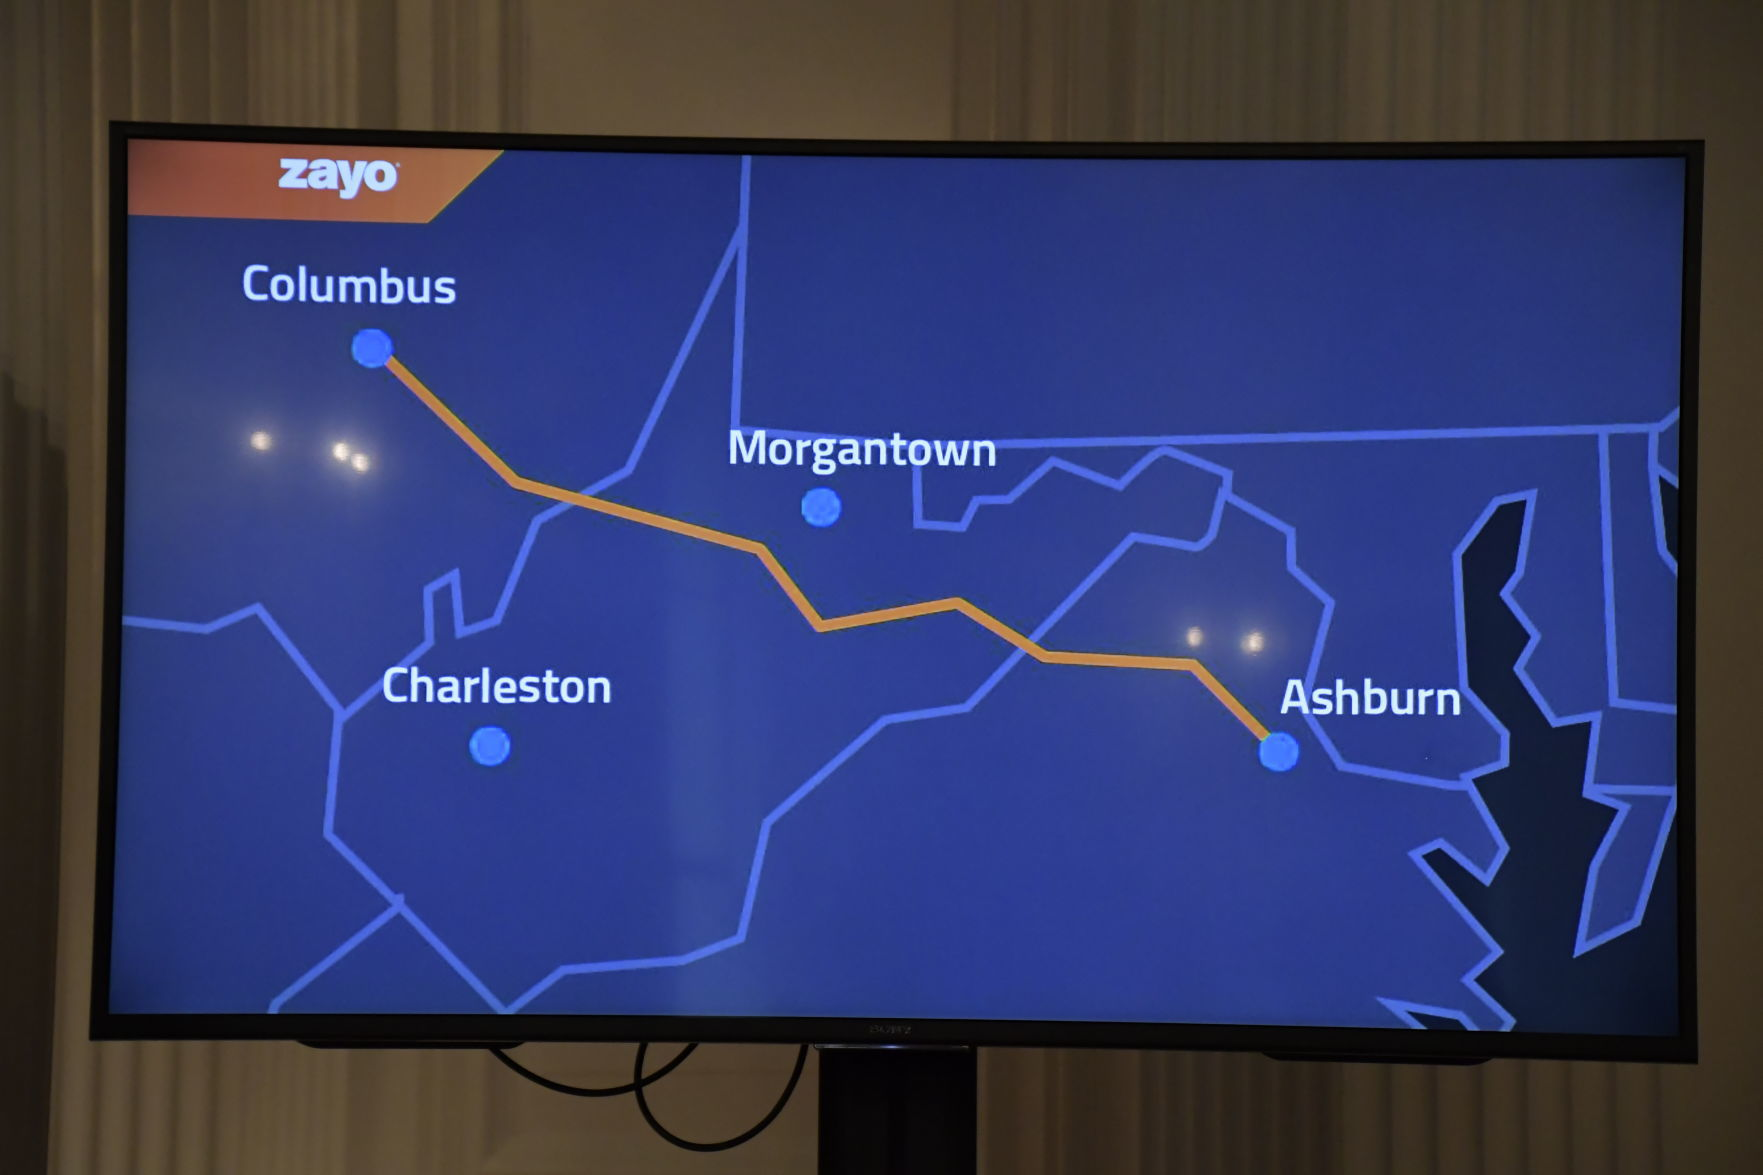 Va Columbus Ohio Fiber Optic Network Could Be A Game Changer For W Va Officials